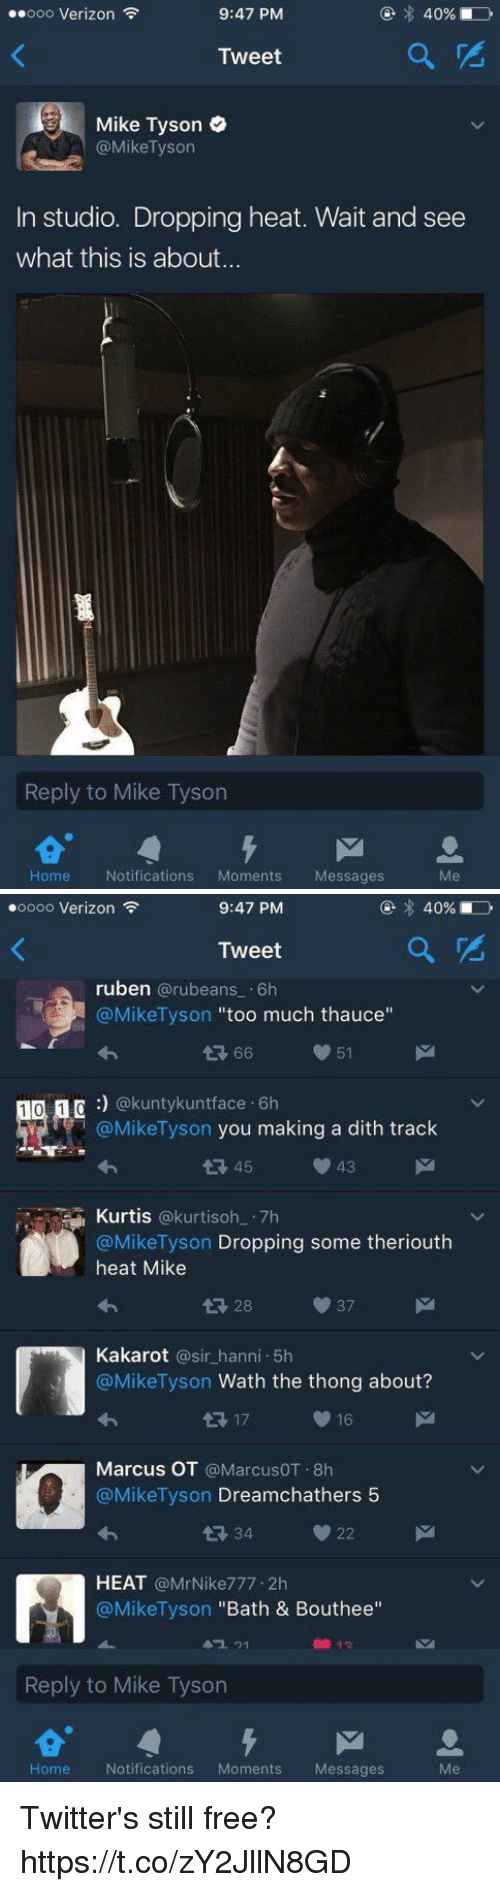 """Funny, Mike Tyson, and Too Much: ..ooo Verizon  9:47 PM  40%  Tweet  Mike Tyson  @Mike Tyson  In studio. Dropping heat. Wait and see  what this is about...  Reply to Mike Tyson  M  Home  Notifications  Moments Messages   oooo Verizon  9:47 PM  Tweet  ruben  @rubeans 6h  @Mike Tyson  too much thauce  66  51  1 0 1  n @kunty kunt face 6h  @Mike Tyson you making a dith track  43  45  Kurtis  @kurti soh 7h  @Mike Tyson  Dropping some theriouth  heat Mike  Kakarot  a sir hanni 5h  @Mike Tyson Wath the thong about?  16  17  Marcus OT  @MarcusOT.8h  @Mike Tyson  Dreamchathers 5  22  HEAT  @Mr Nike777.2h  @Mike Tyson Bath & Bouthee""""  Reply to Mike Tyson  M  Home Notifications  Moments  Messages Twitter's still free? https://t.co/zY2JllN8GD"""